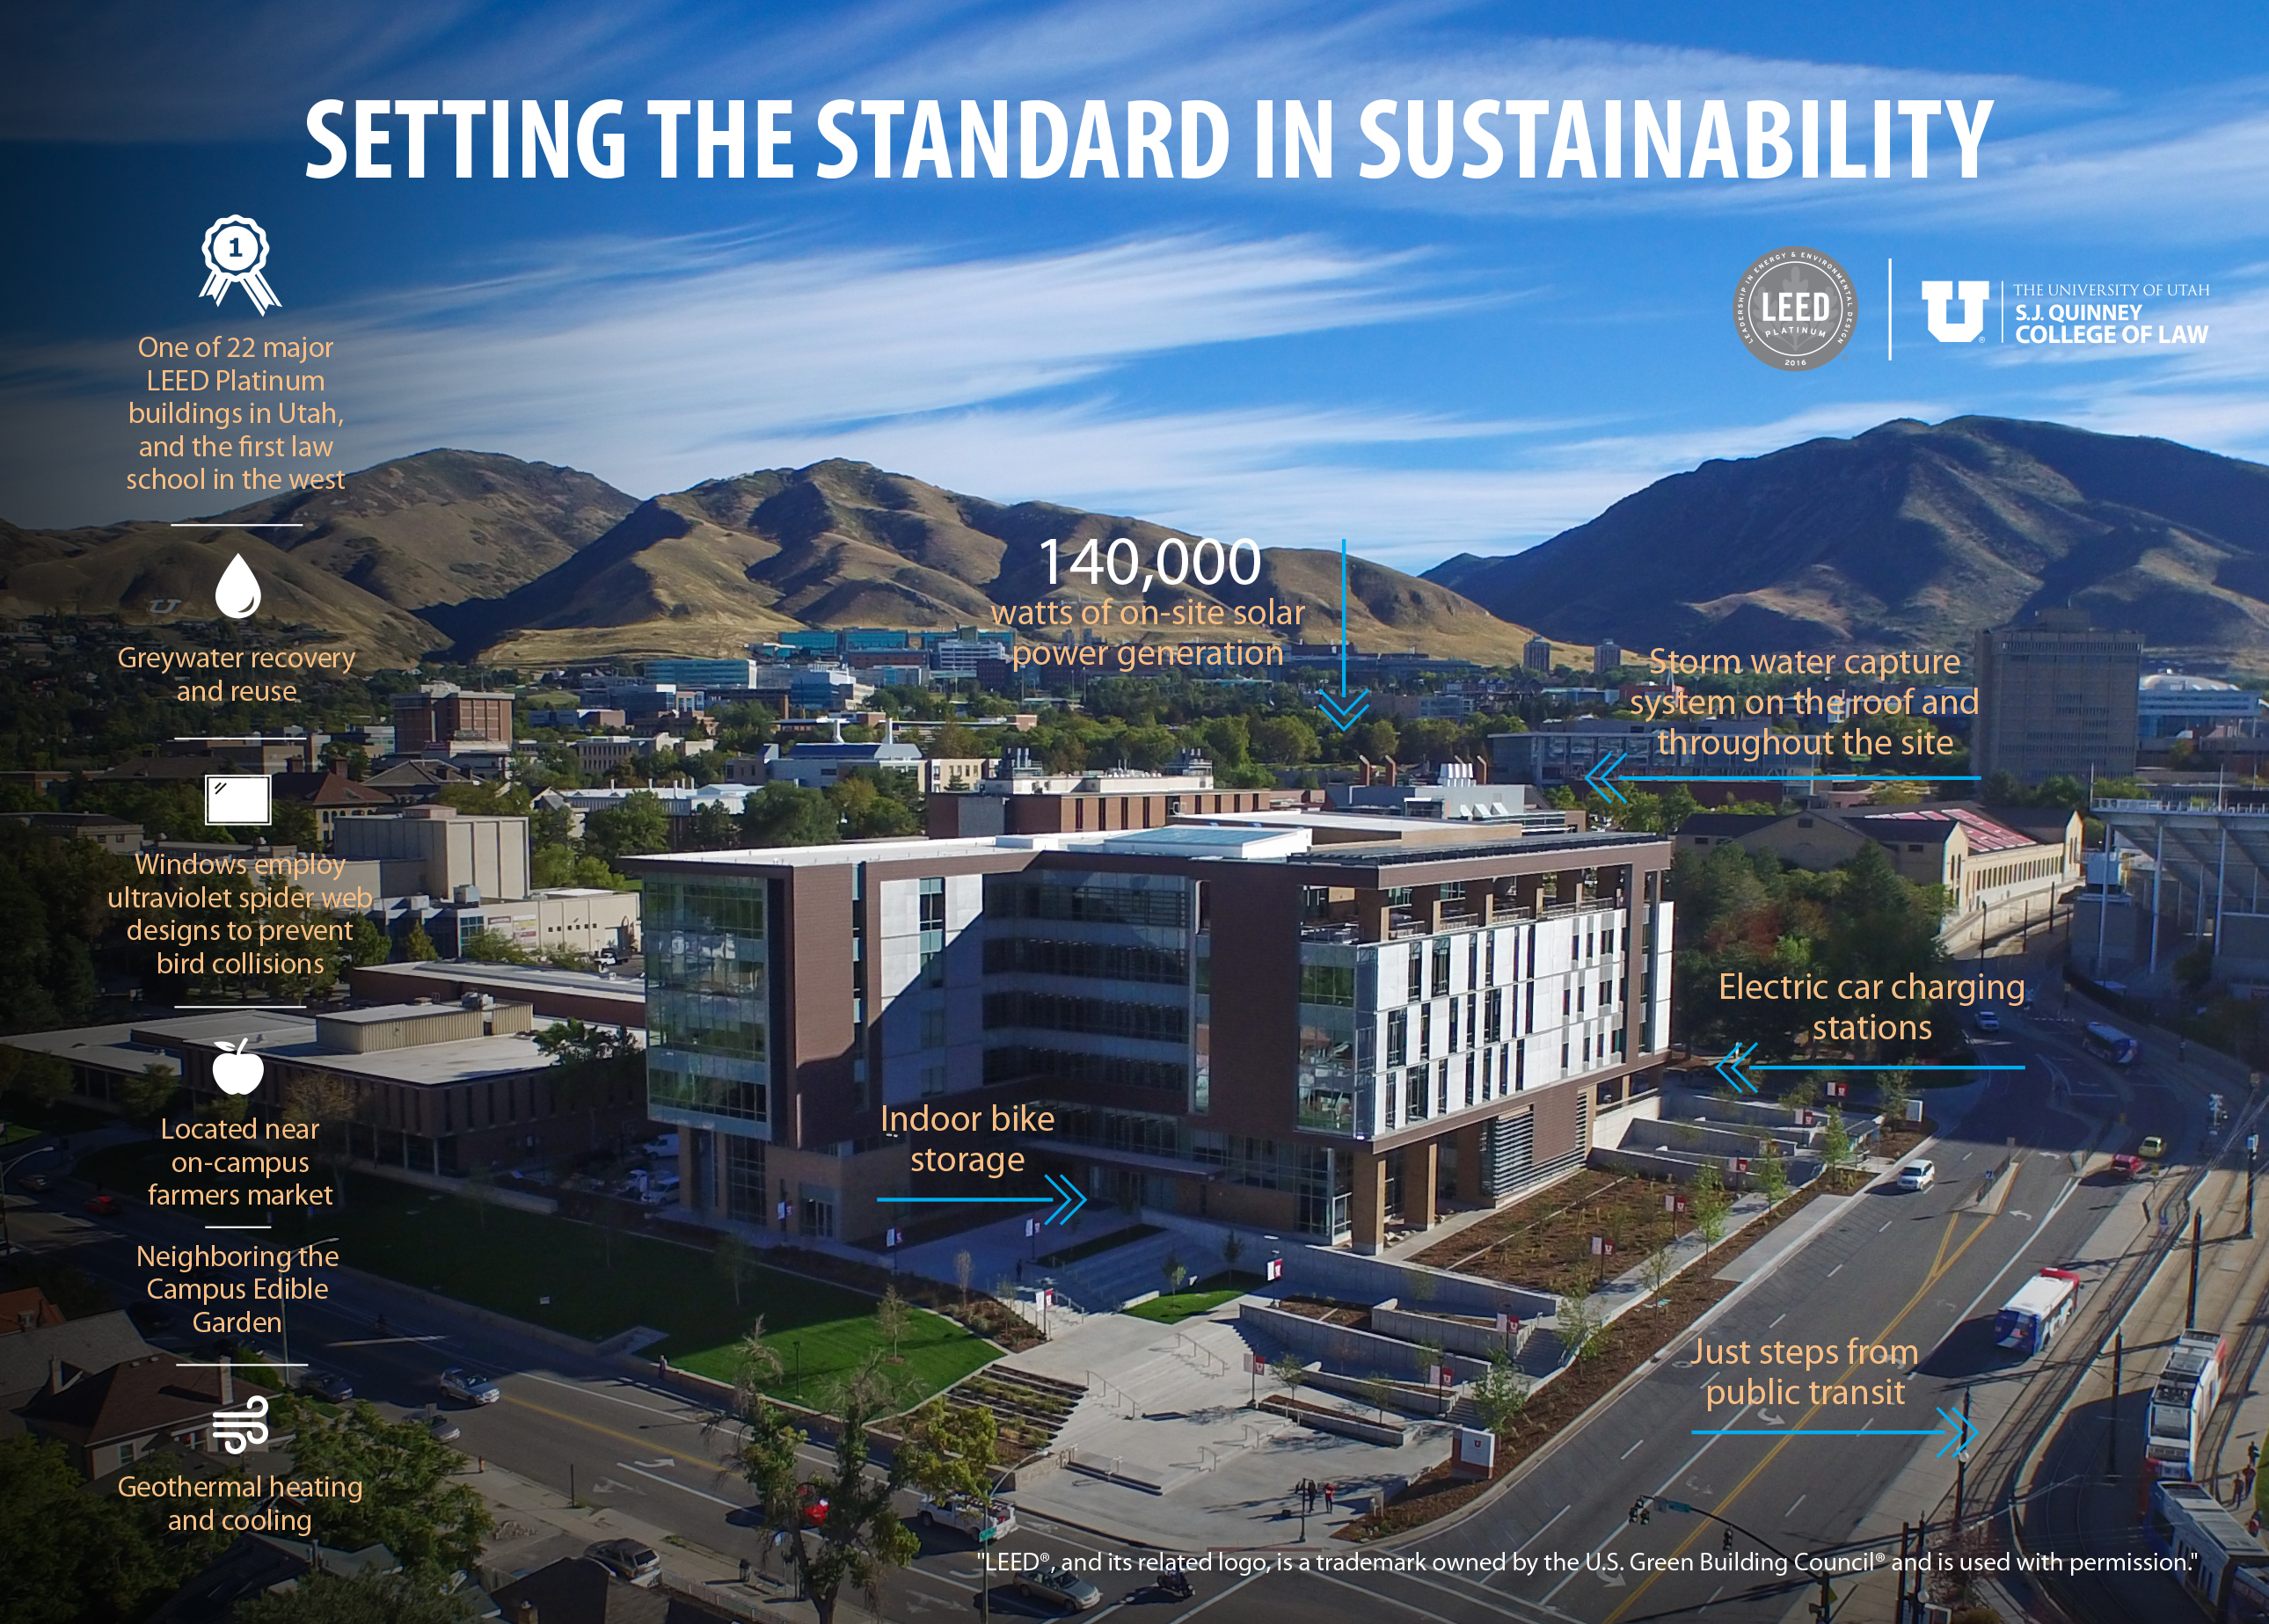 17-0041 College of Law Sustainability Infographic FINAL